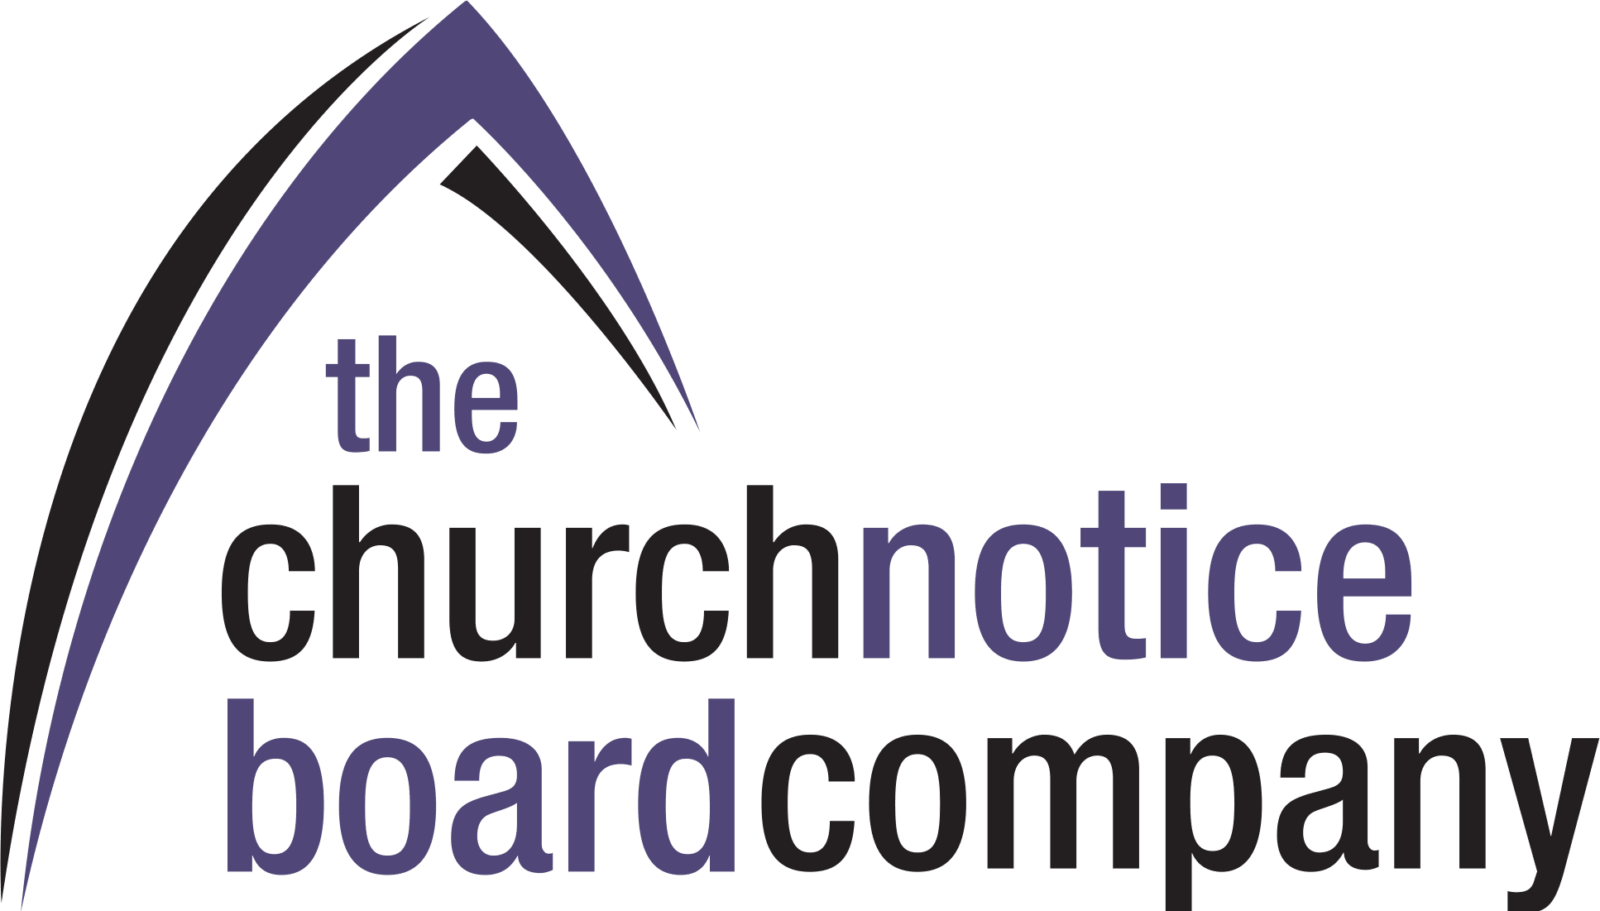 The Church Notice Board Company